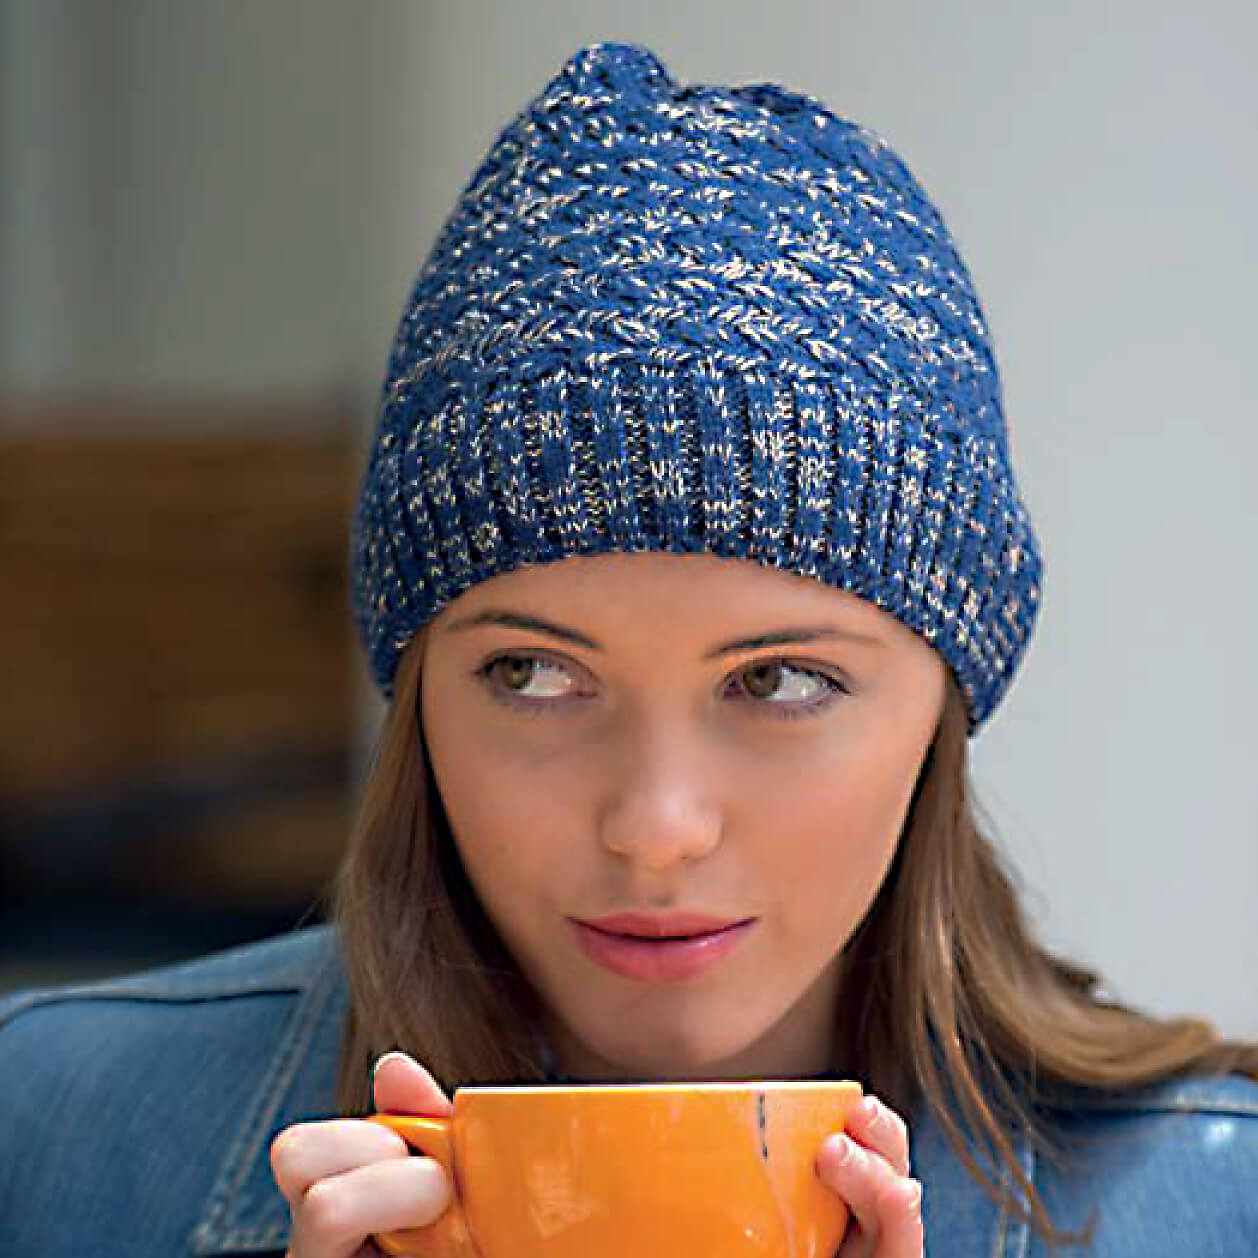 RL299 2 woman hat. Salt and Pepper Knitted Beanie